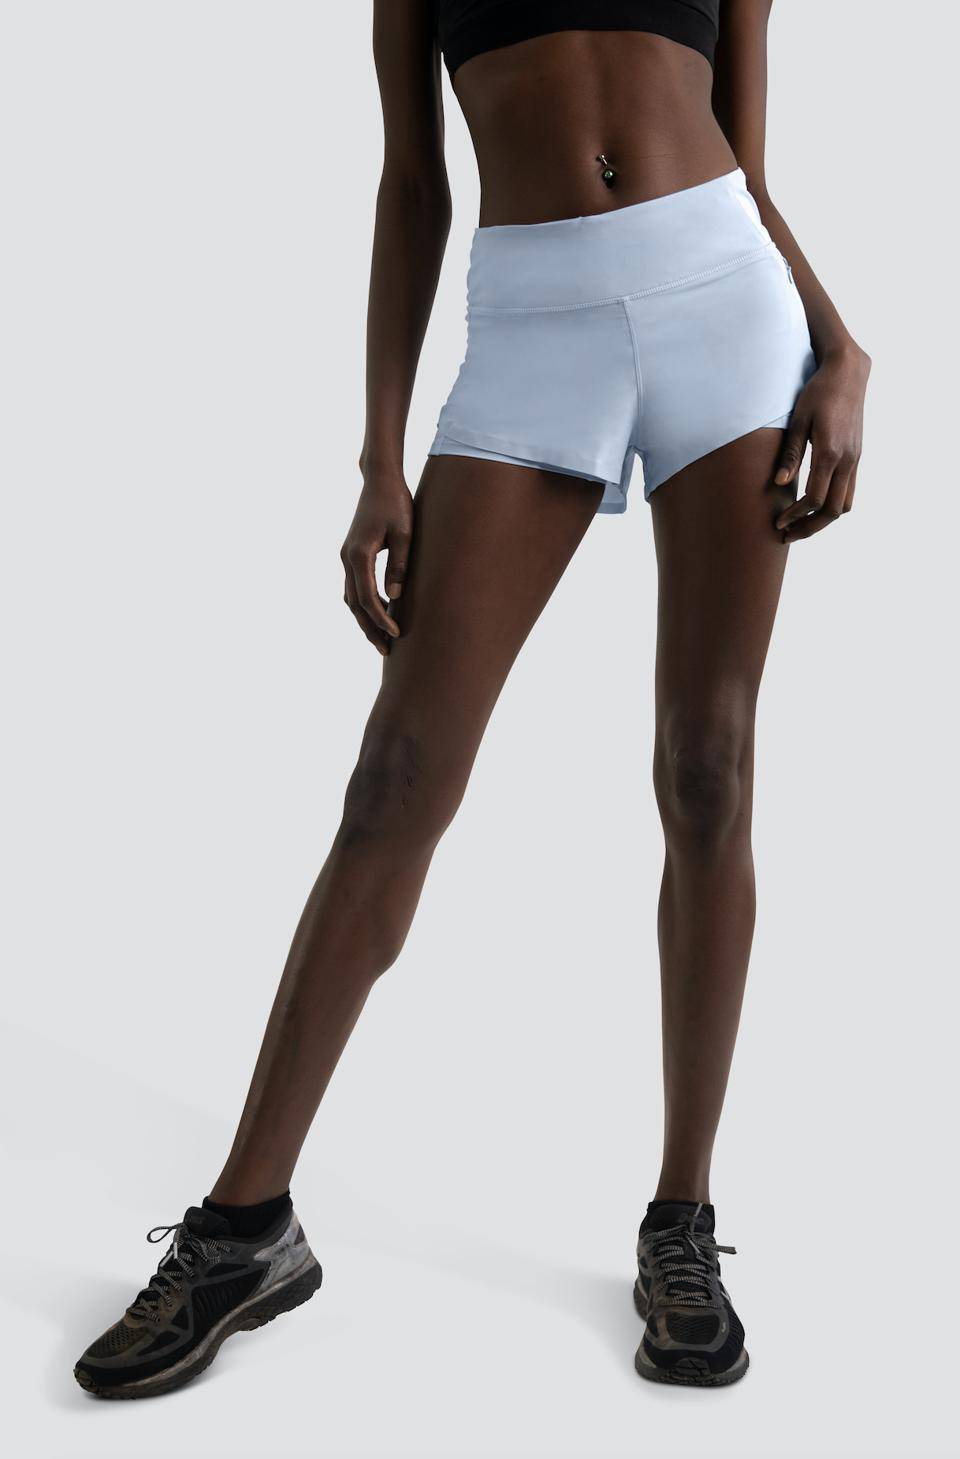 HiFlex™Running Shorts in Baby Blue by Centric